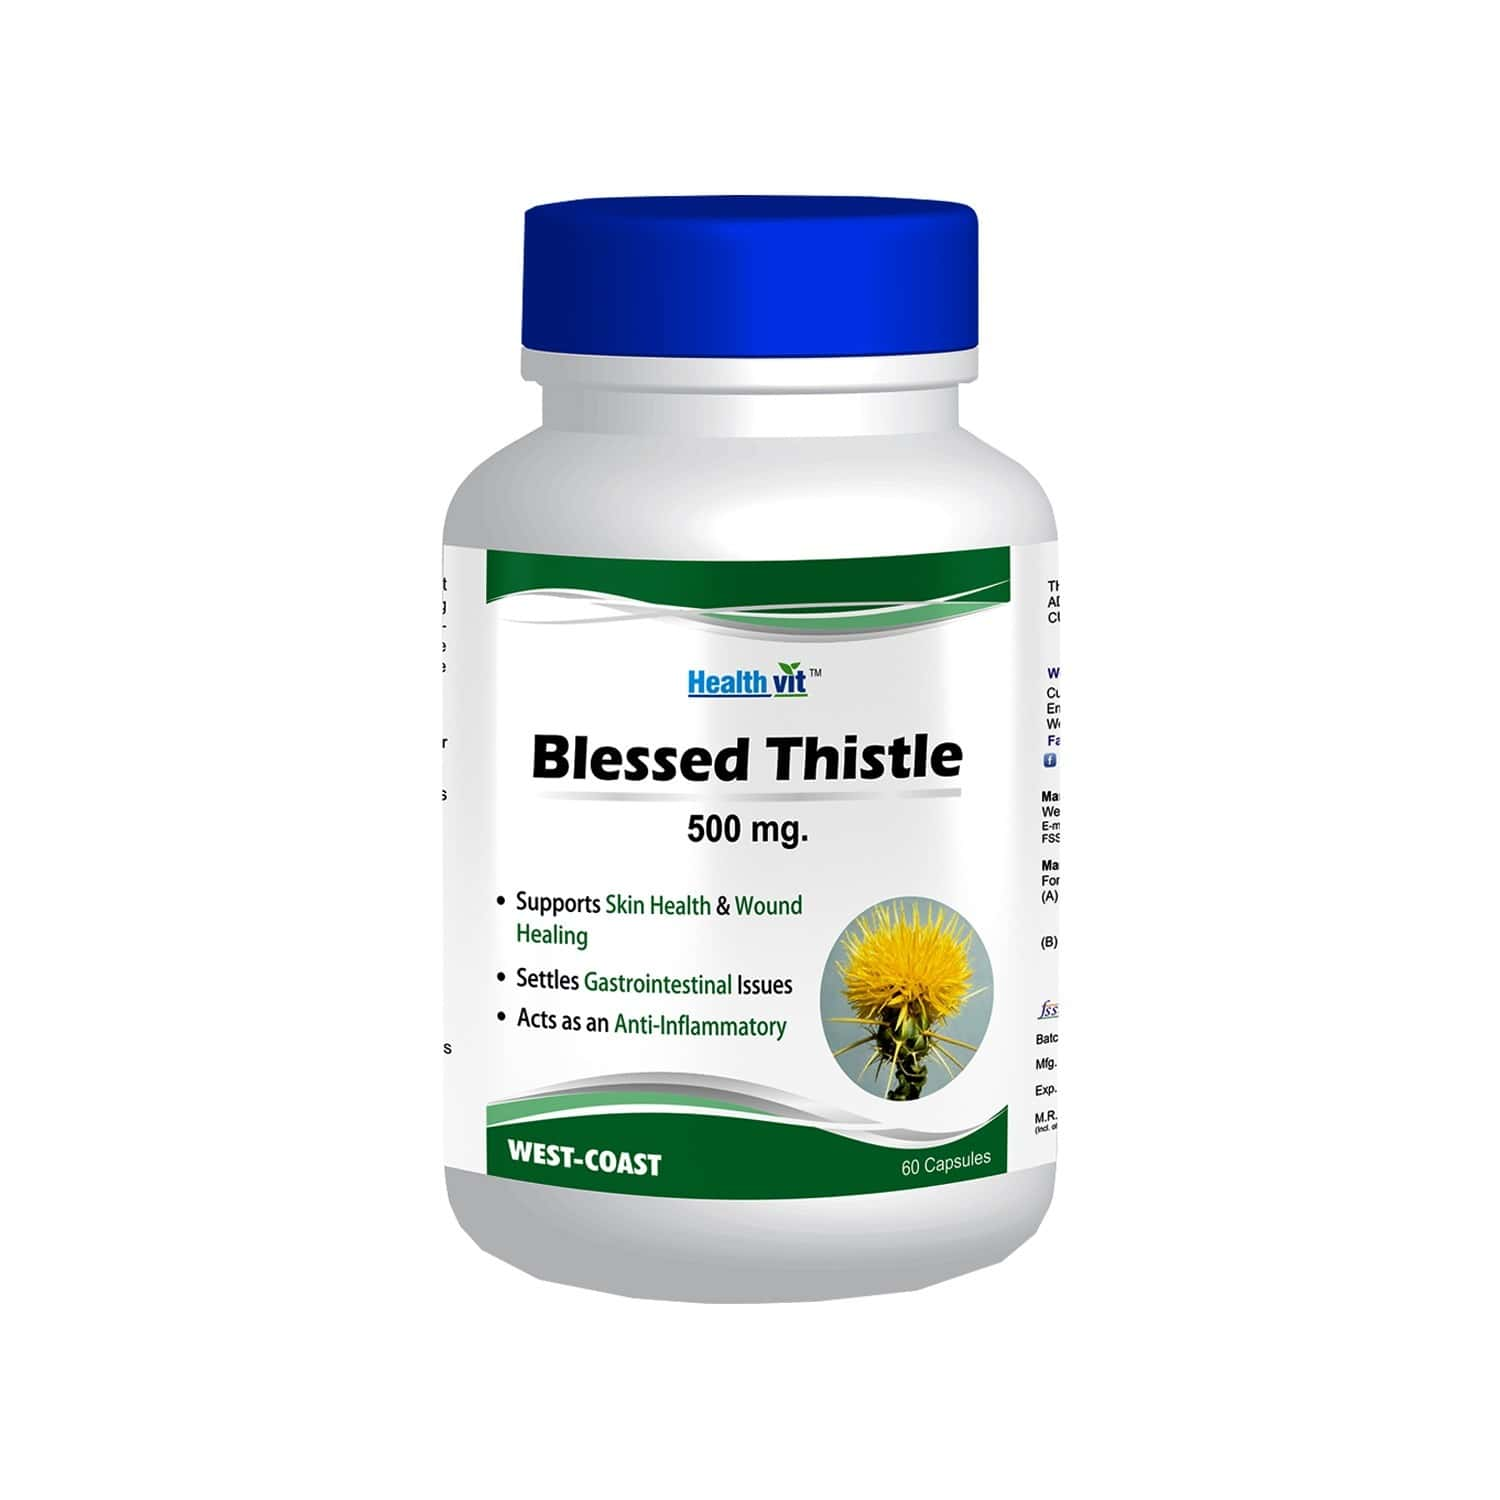 Healthvit Blessed Thistle 500 Mg -60 Capsules